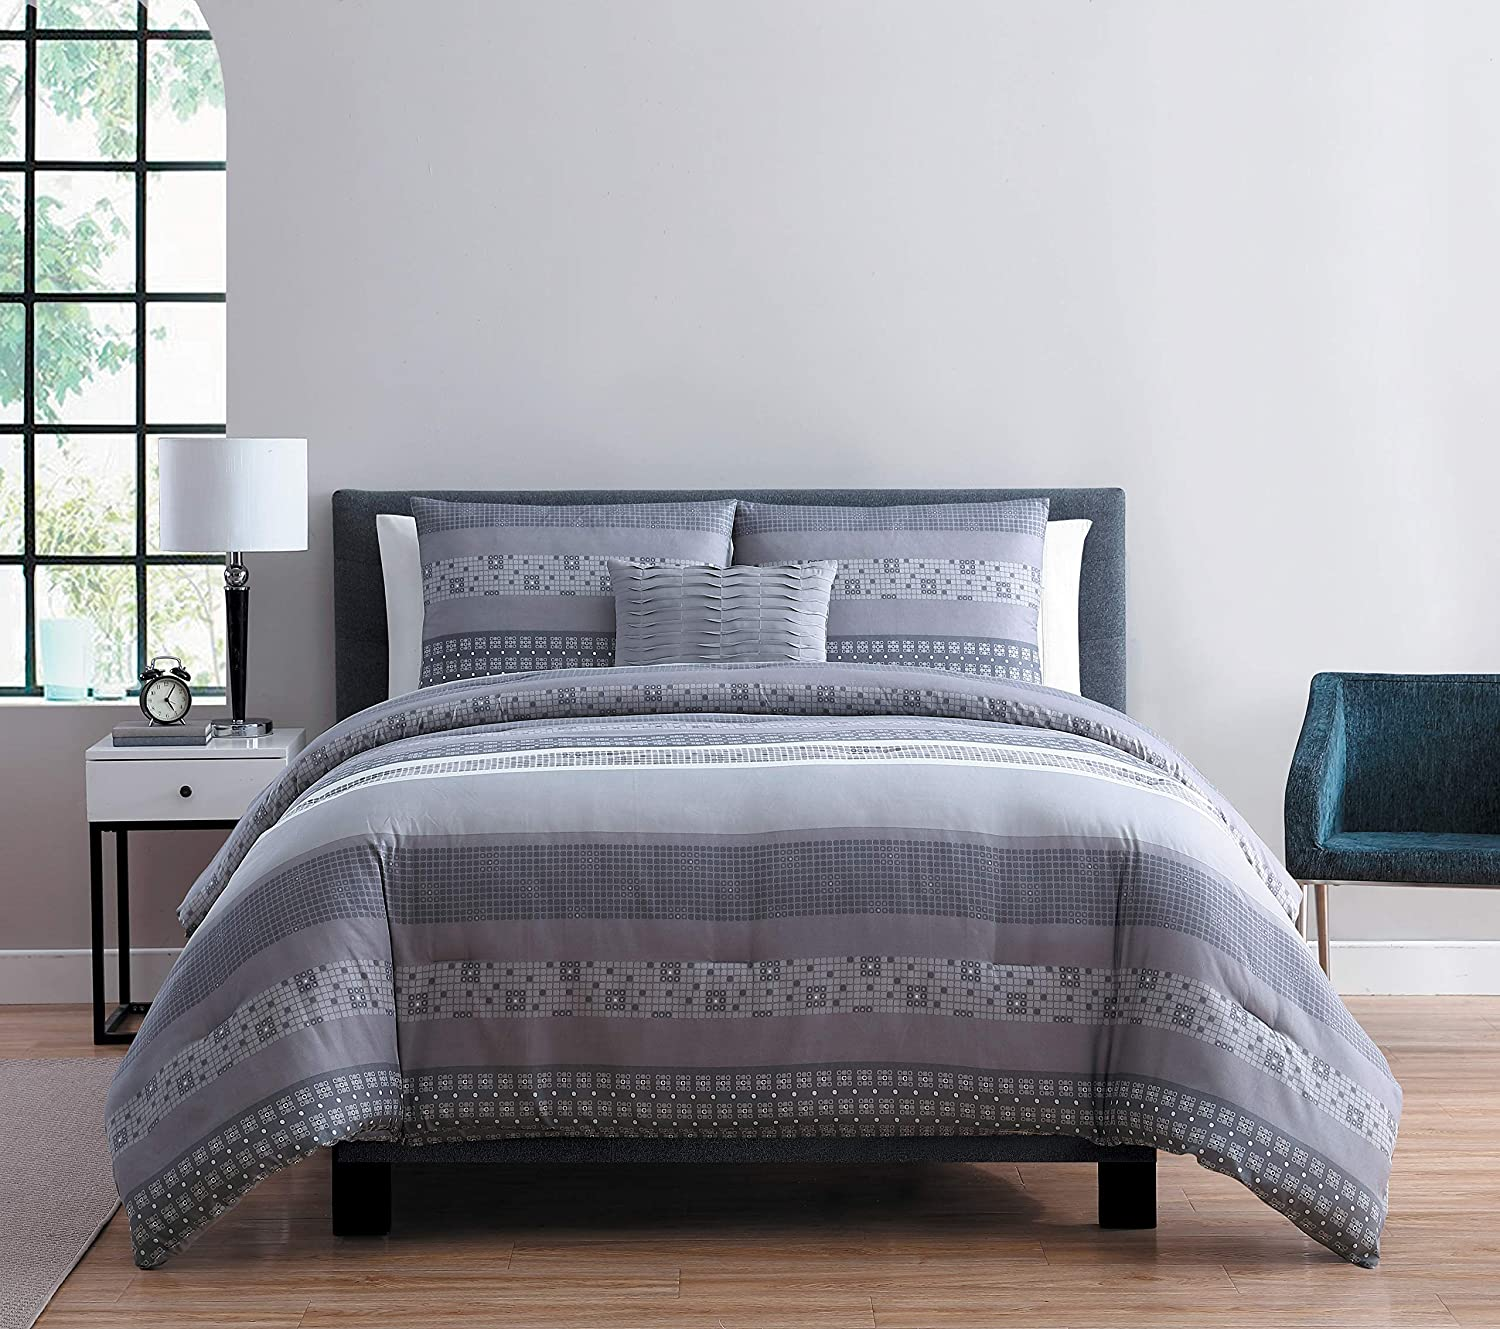 cfb3b6875a0c Amazon.com  VCNY Home Casper Striped 3 Piece Bedding Comforter Set Twin XL  Grey  Home   Kitchen